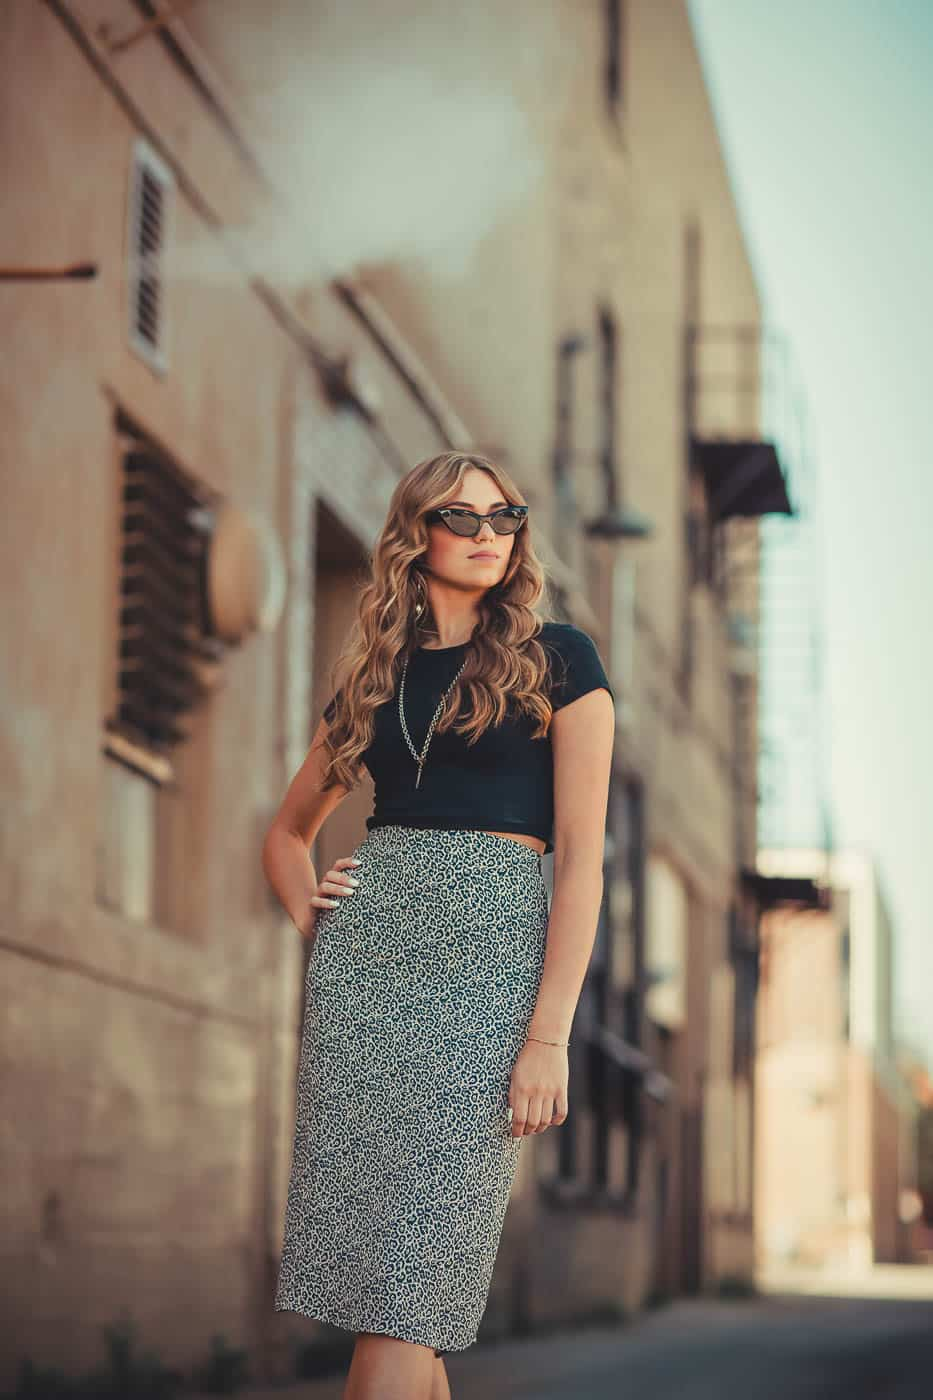 Fashion inspired portrait downtown in alleyway